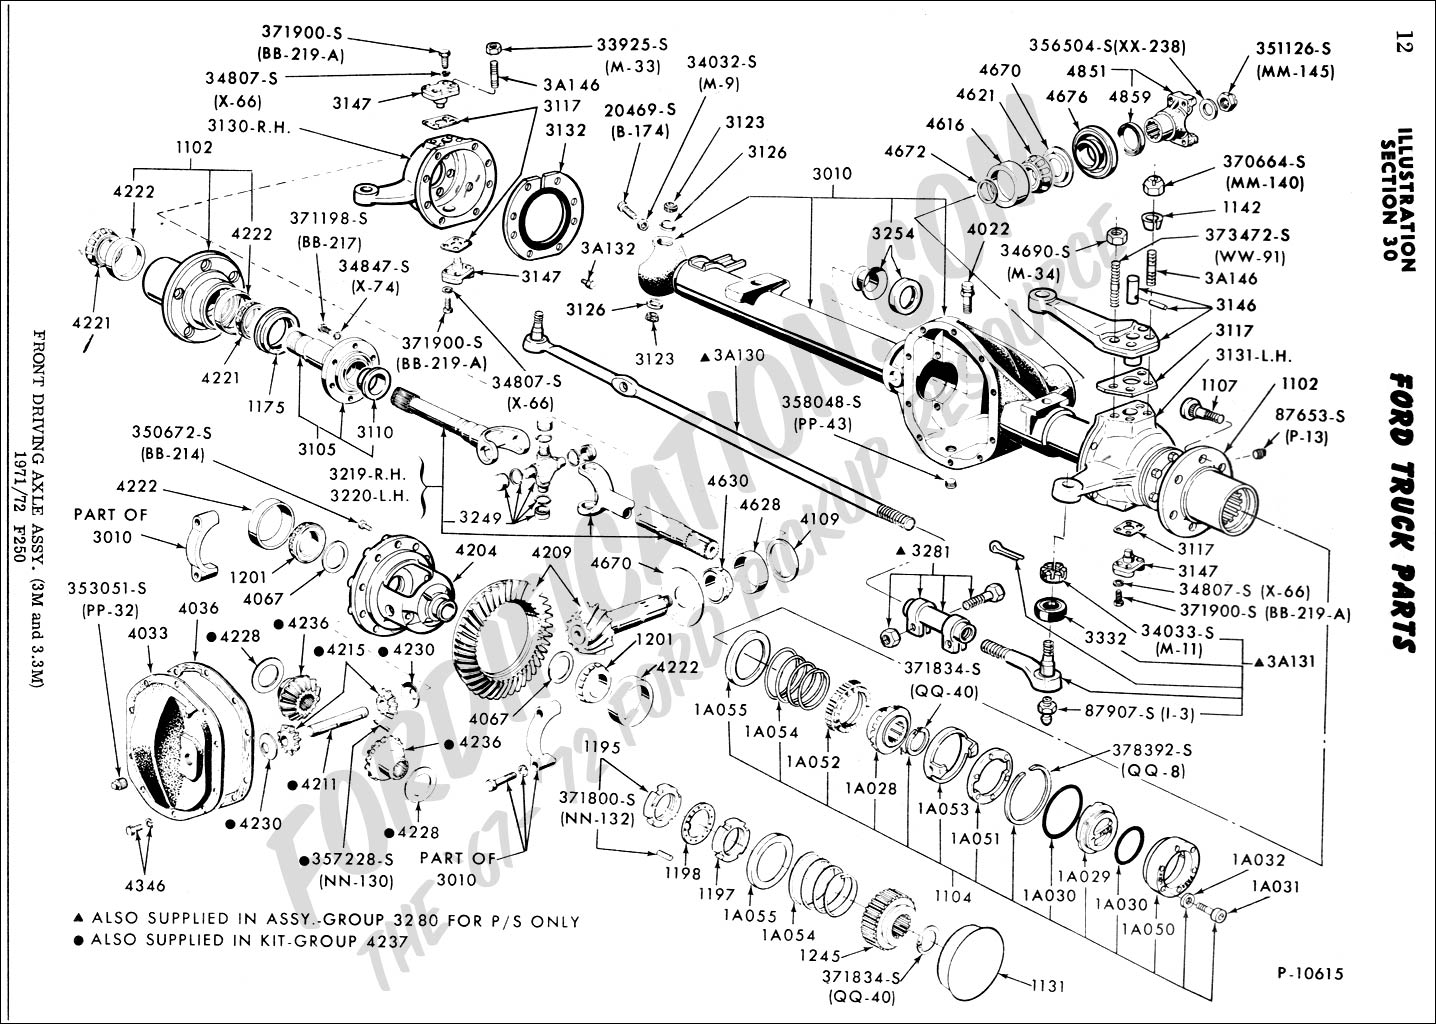 2000 f250 front axle diagram full hd version axle diagram - lone-diagram .kuteportal.fr  diagram database - kuteportal